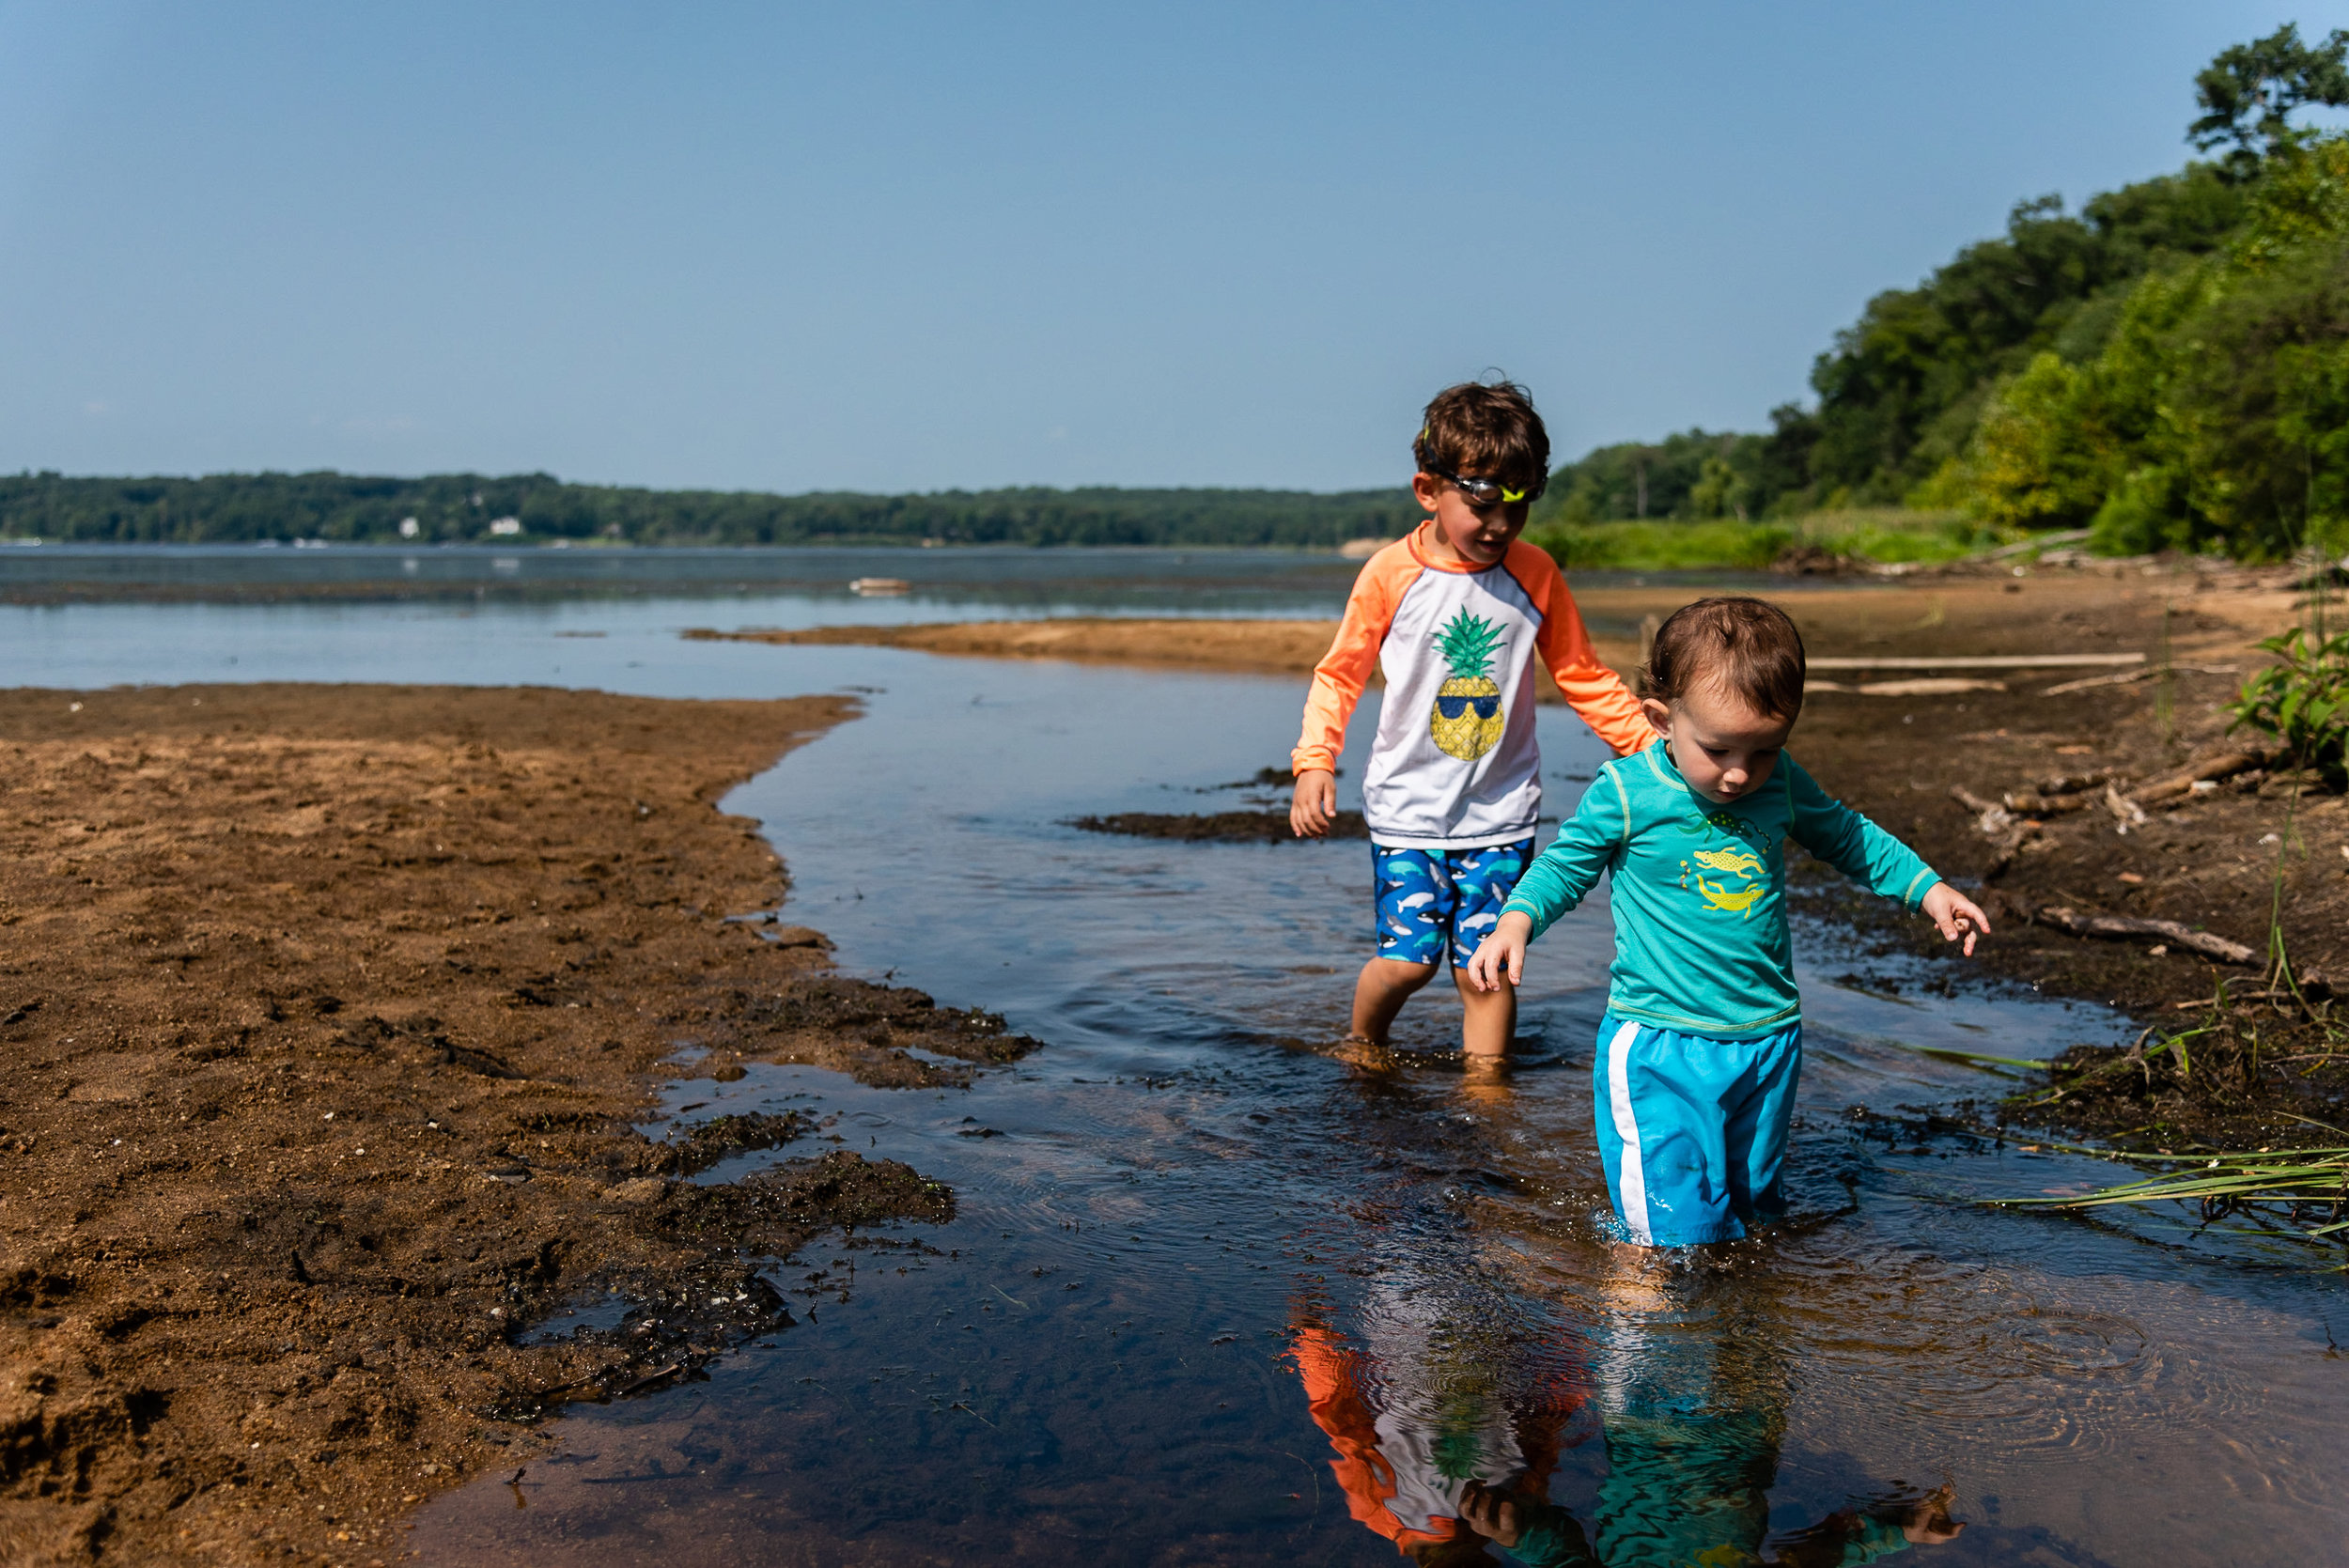 Brothers wading in water at Mason Neck Park by Northern Virginia Family Photographer Nicole Sanchez